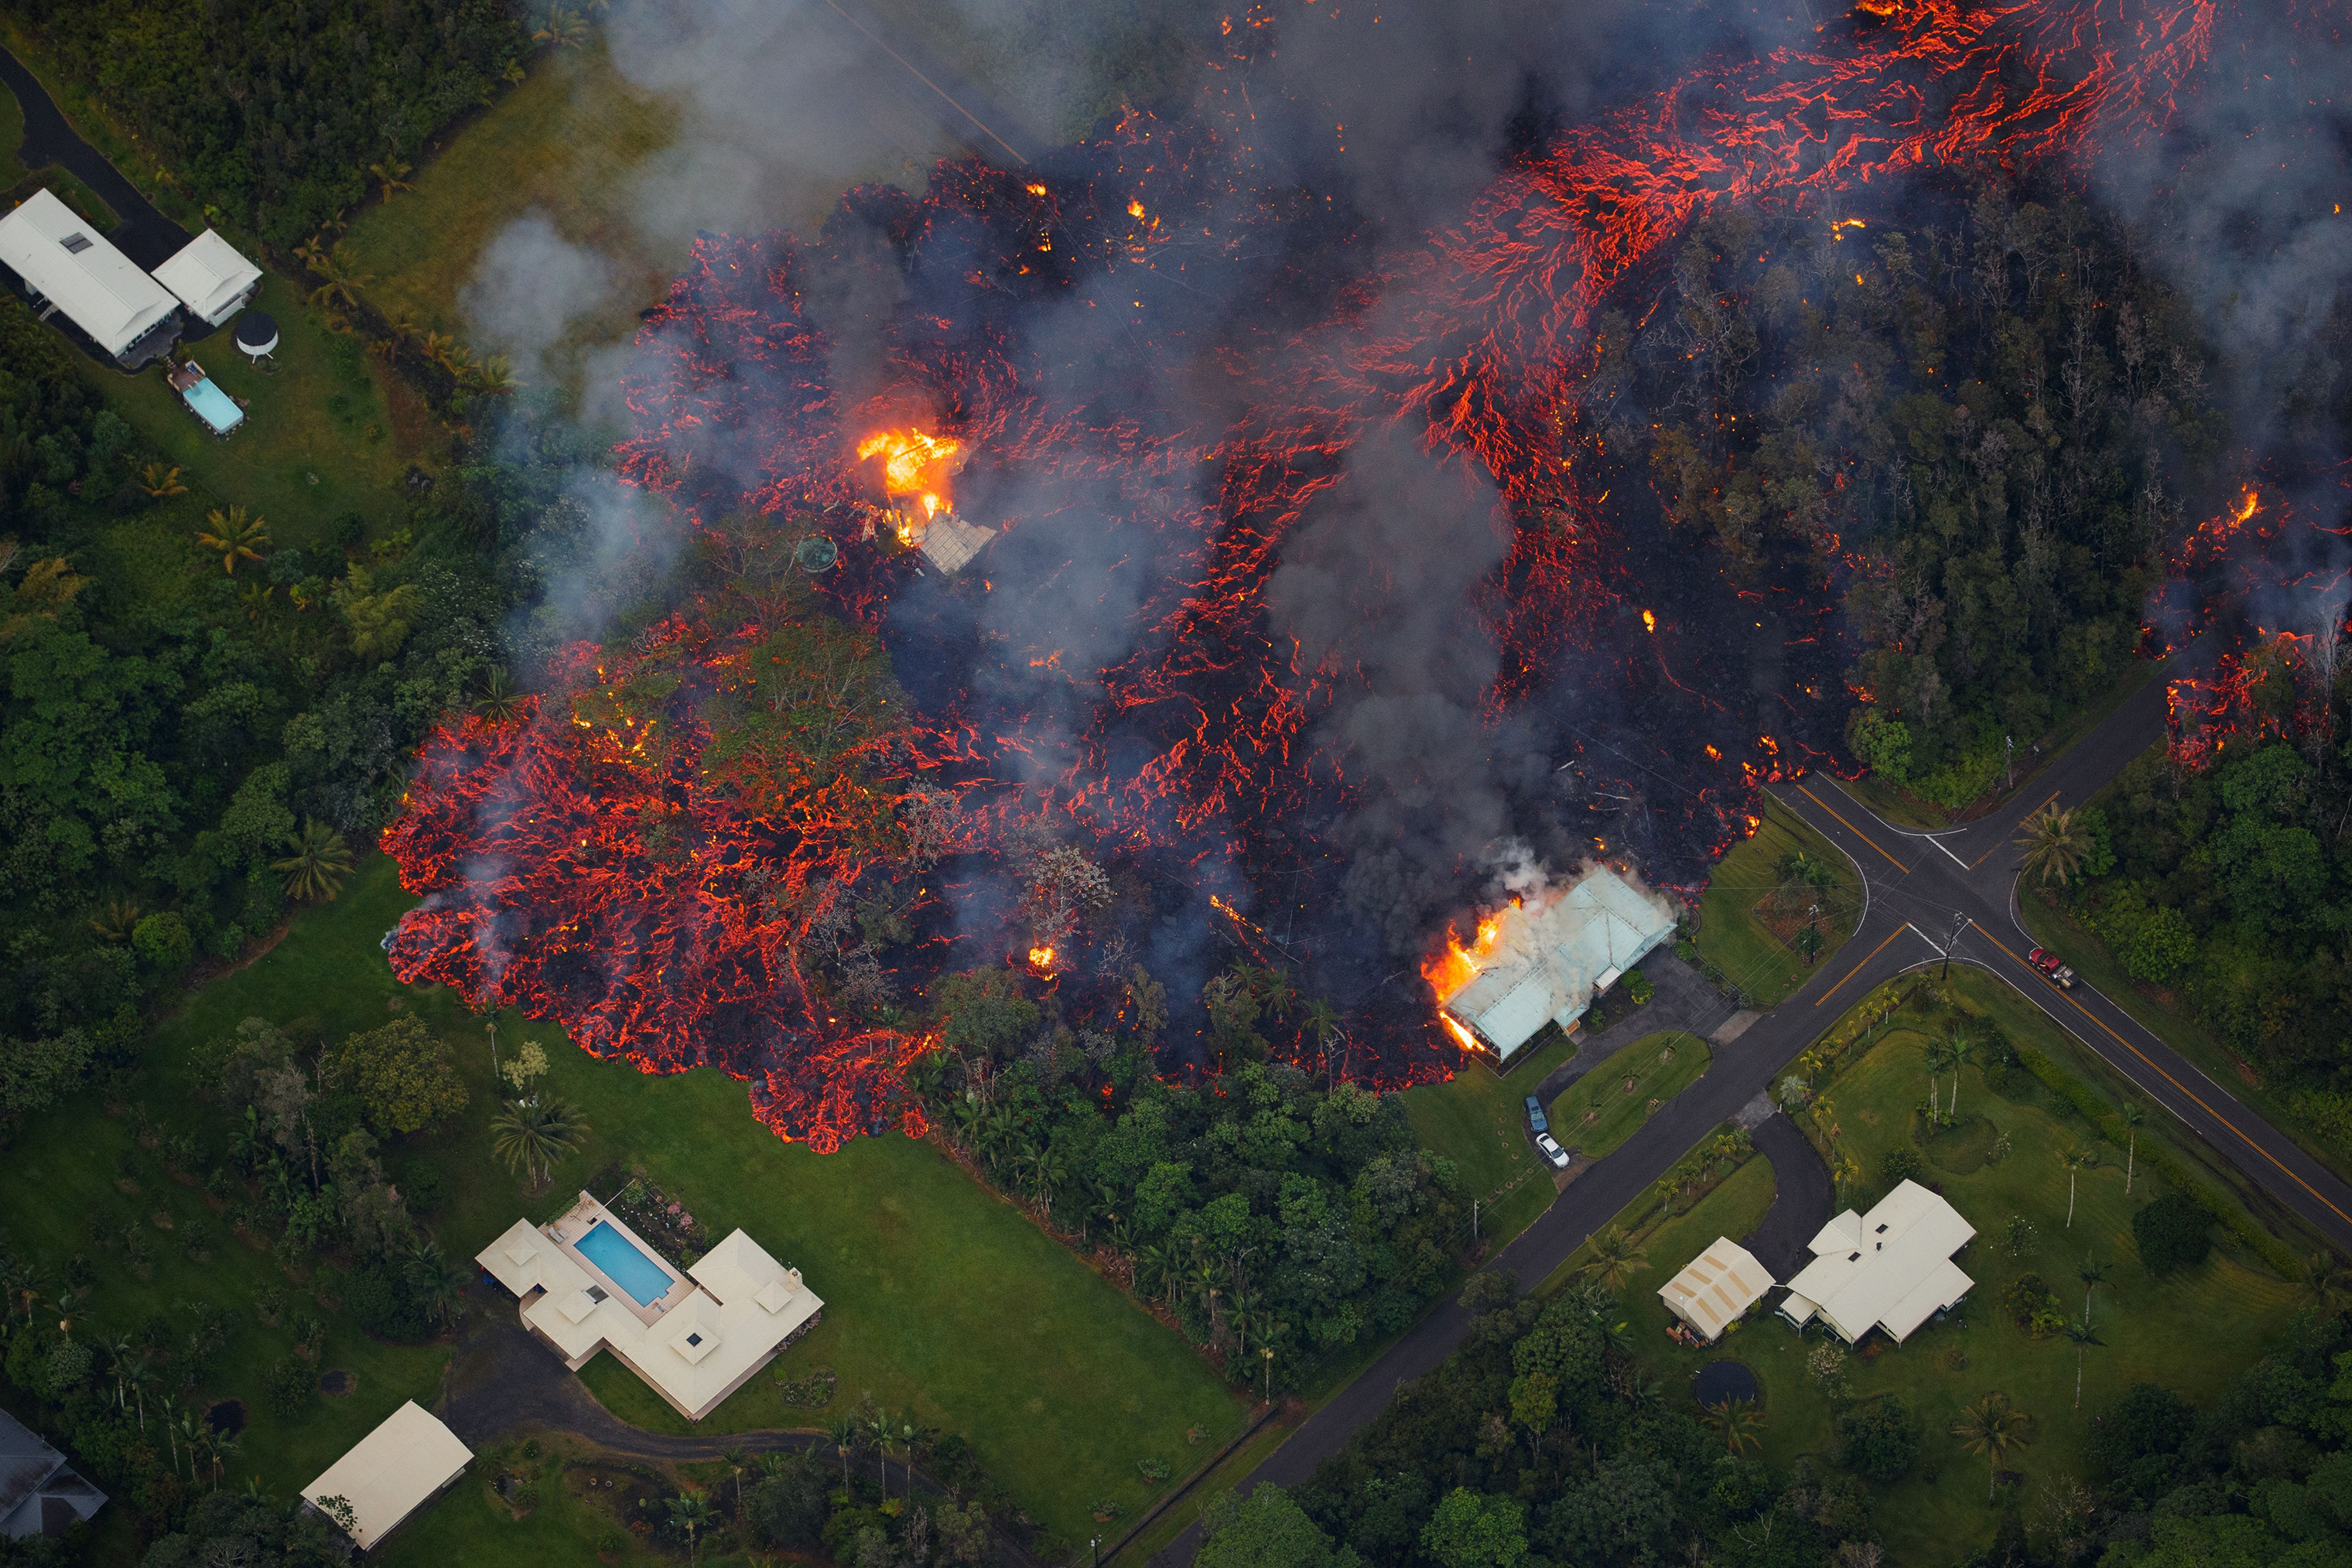 A fissure eruption releases lava and gas in the Leilani Estates subdivision near Hawaii's Kilauea volcano on May 6, 2018.